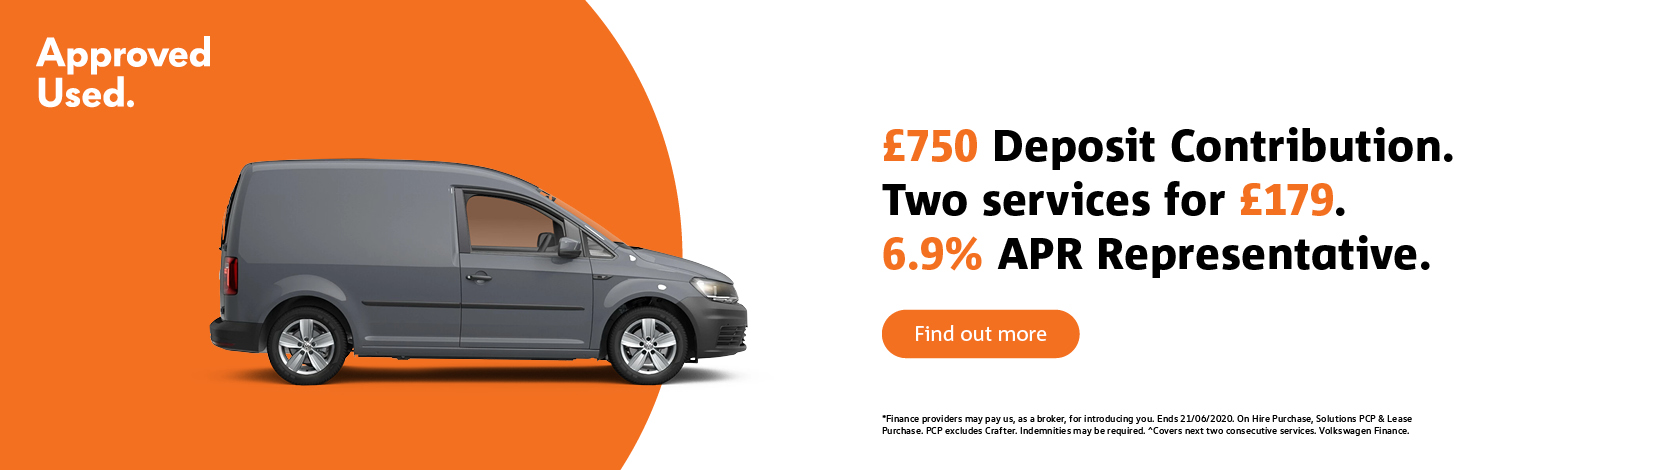 Approved Used Caddy Offer